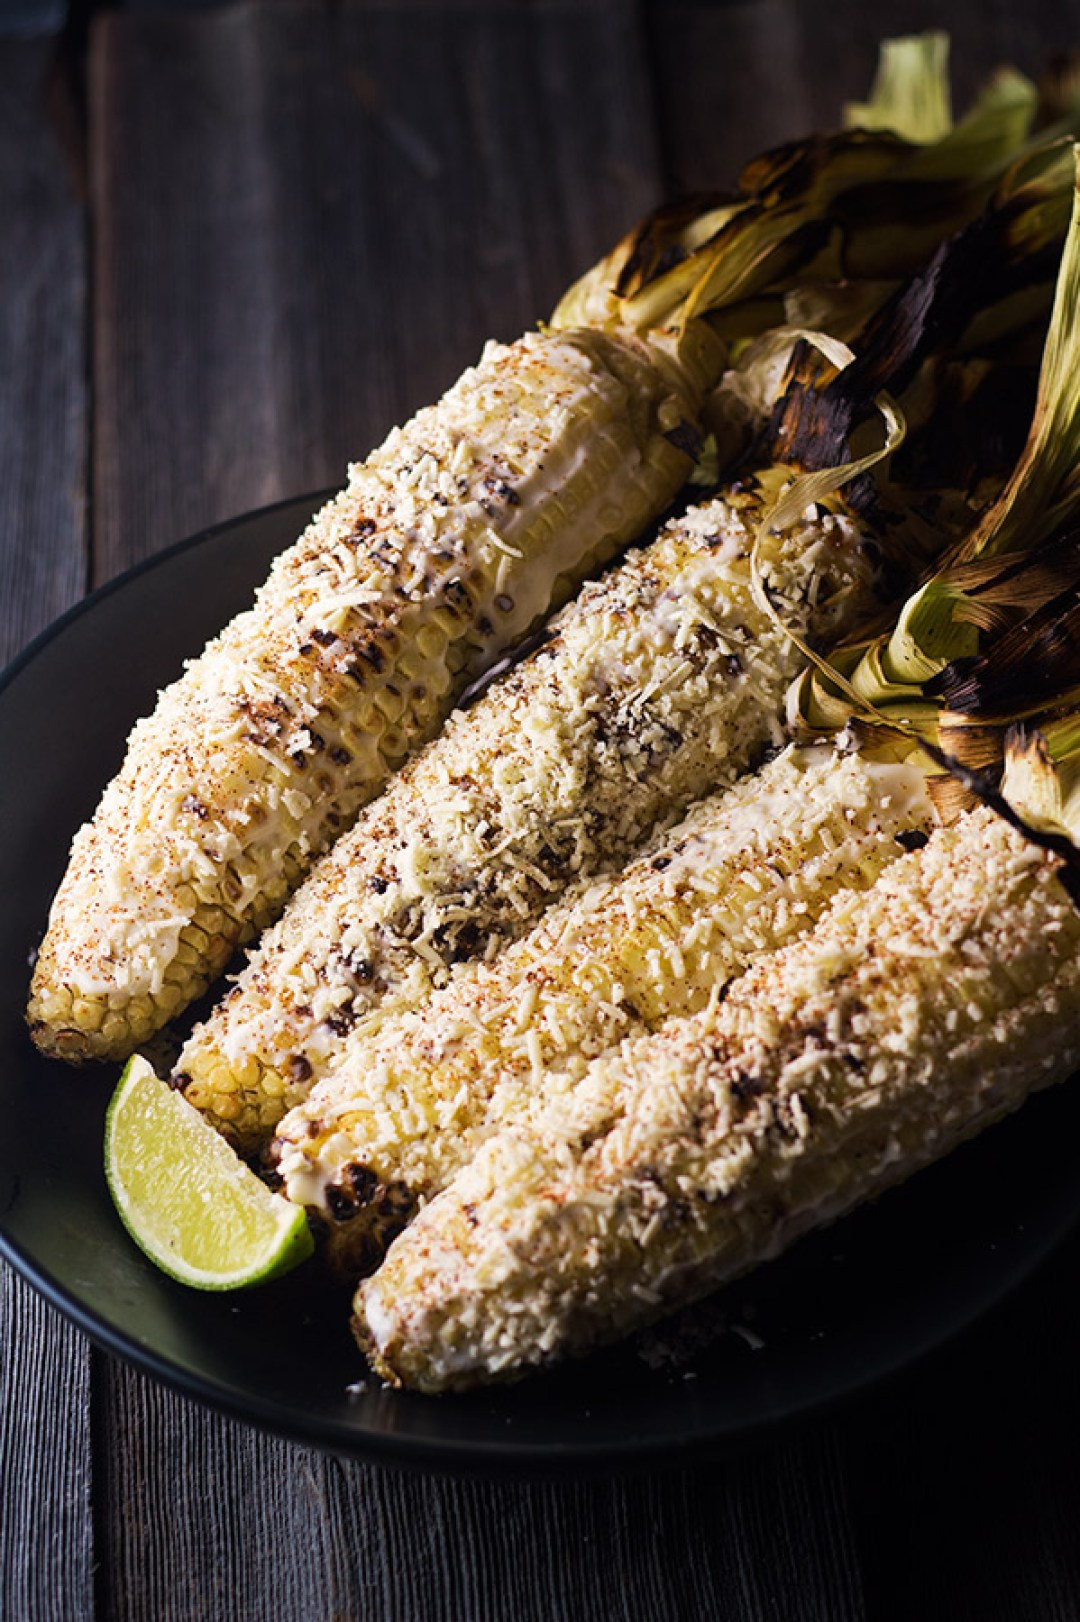 Street Corn - This street corn is full of yummy flavors, mayo, lime, cheese, and to give it a kick some cayenne pepper. Better than the street vendors. Yum! | butterandthings.com